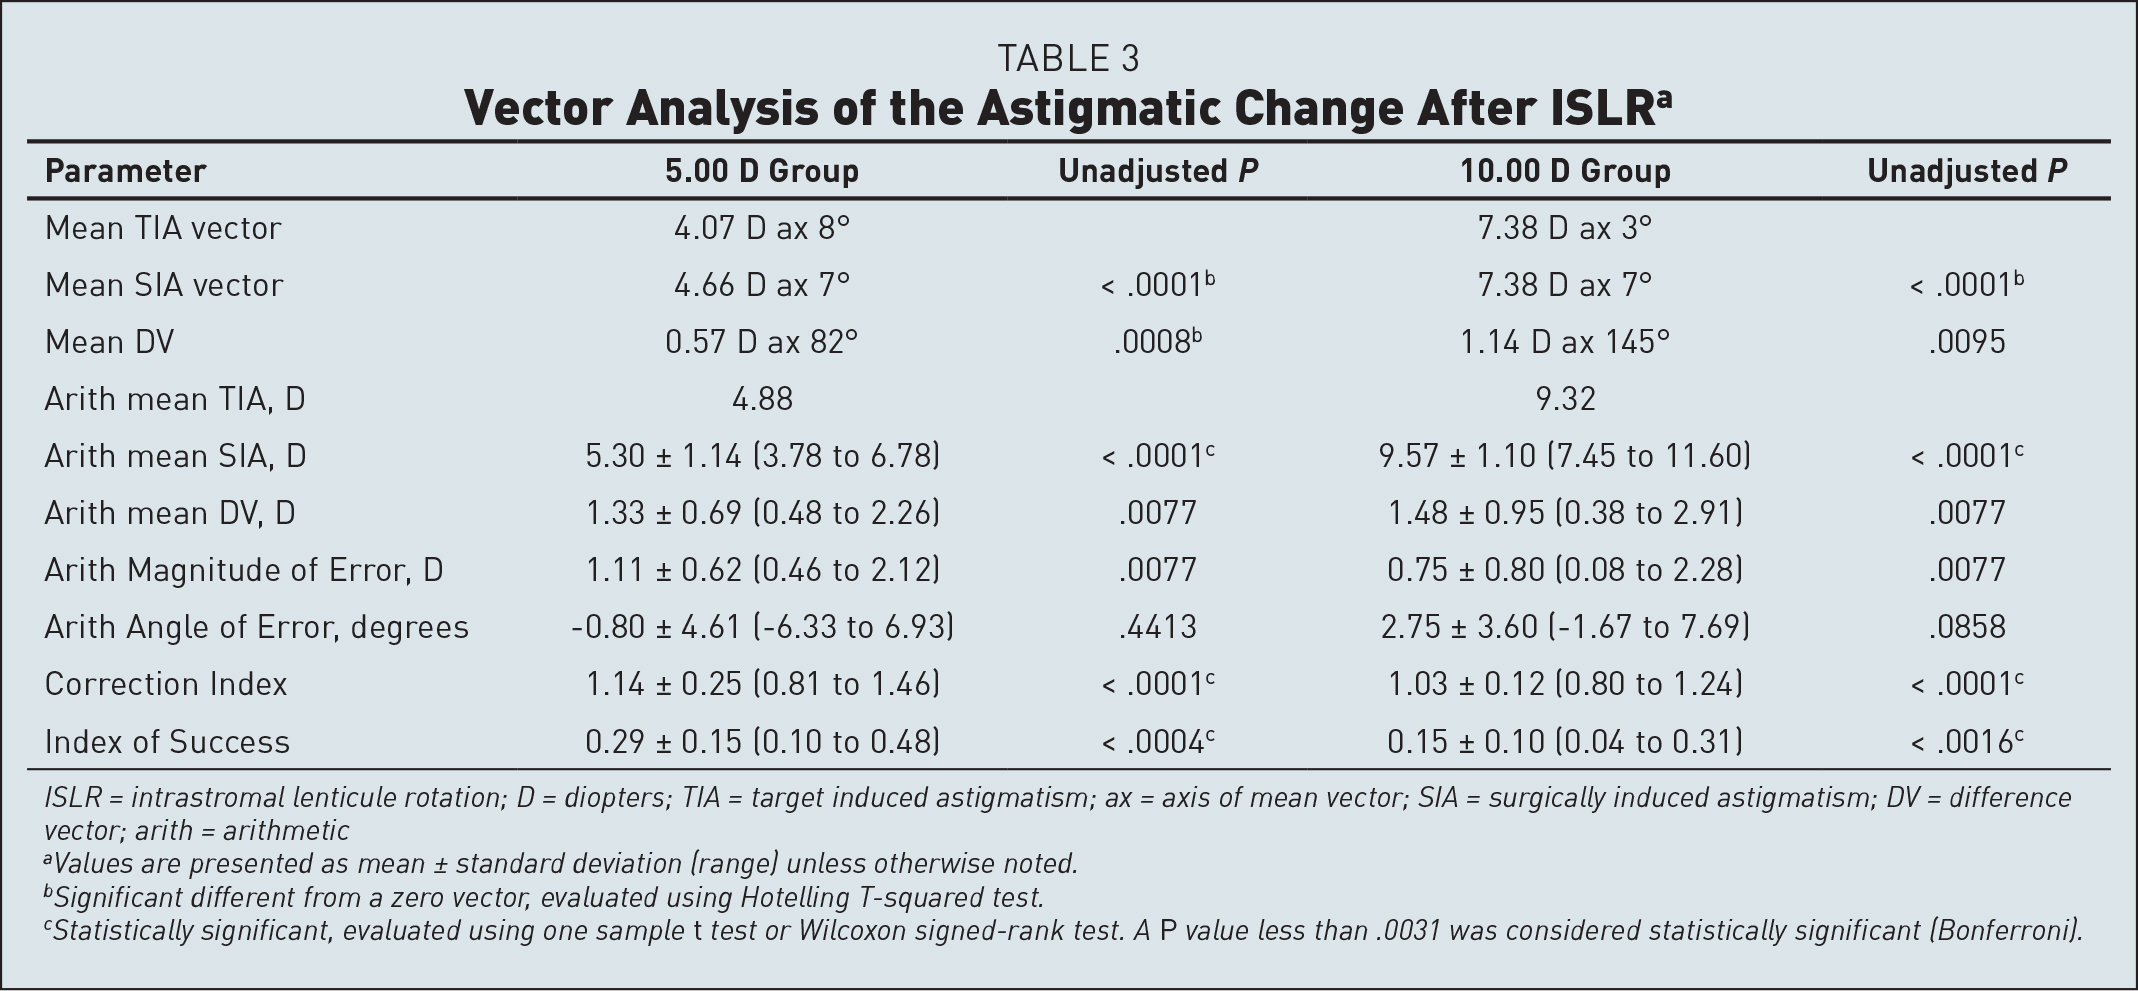 Vector Analysis of the Astigmatic Change After ISLRa